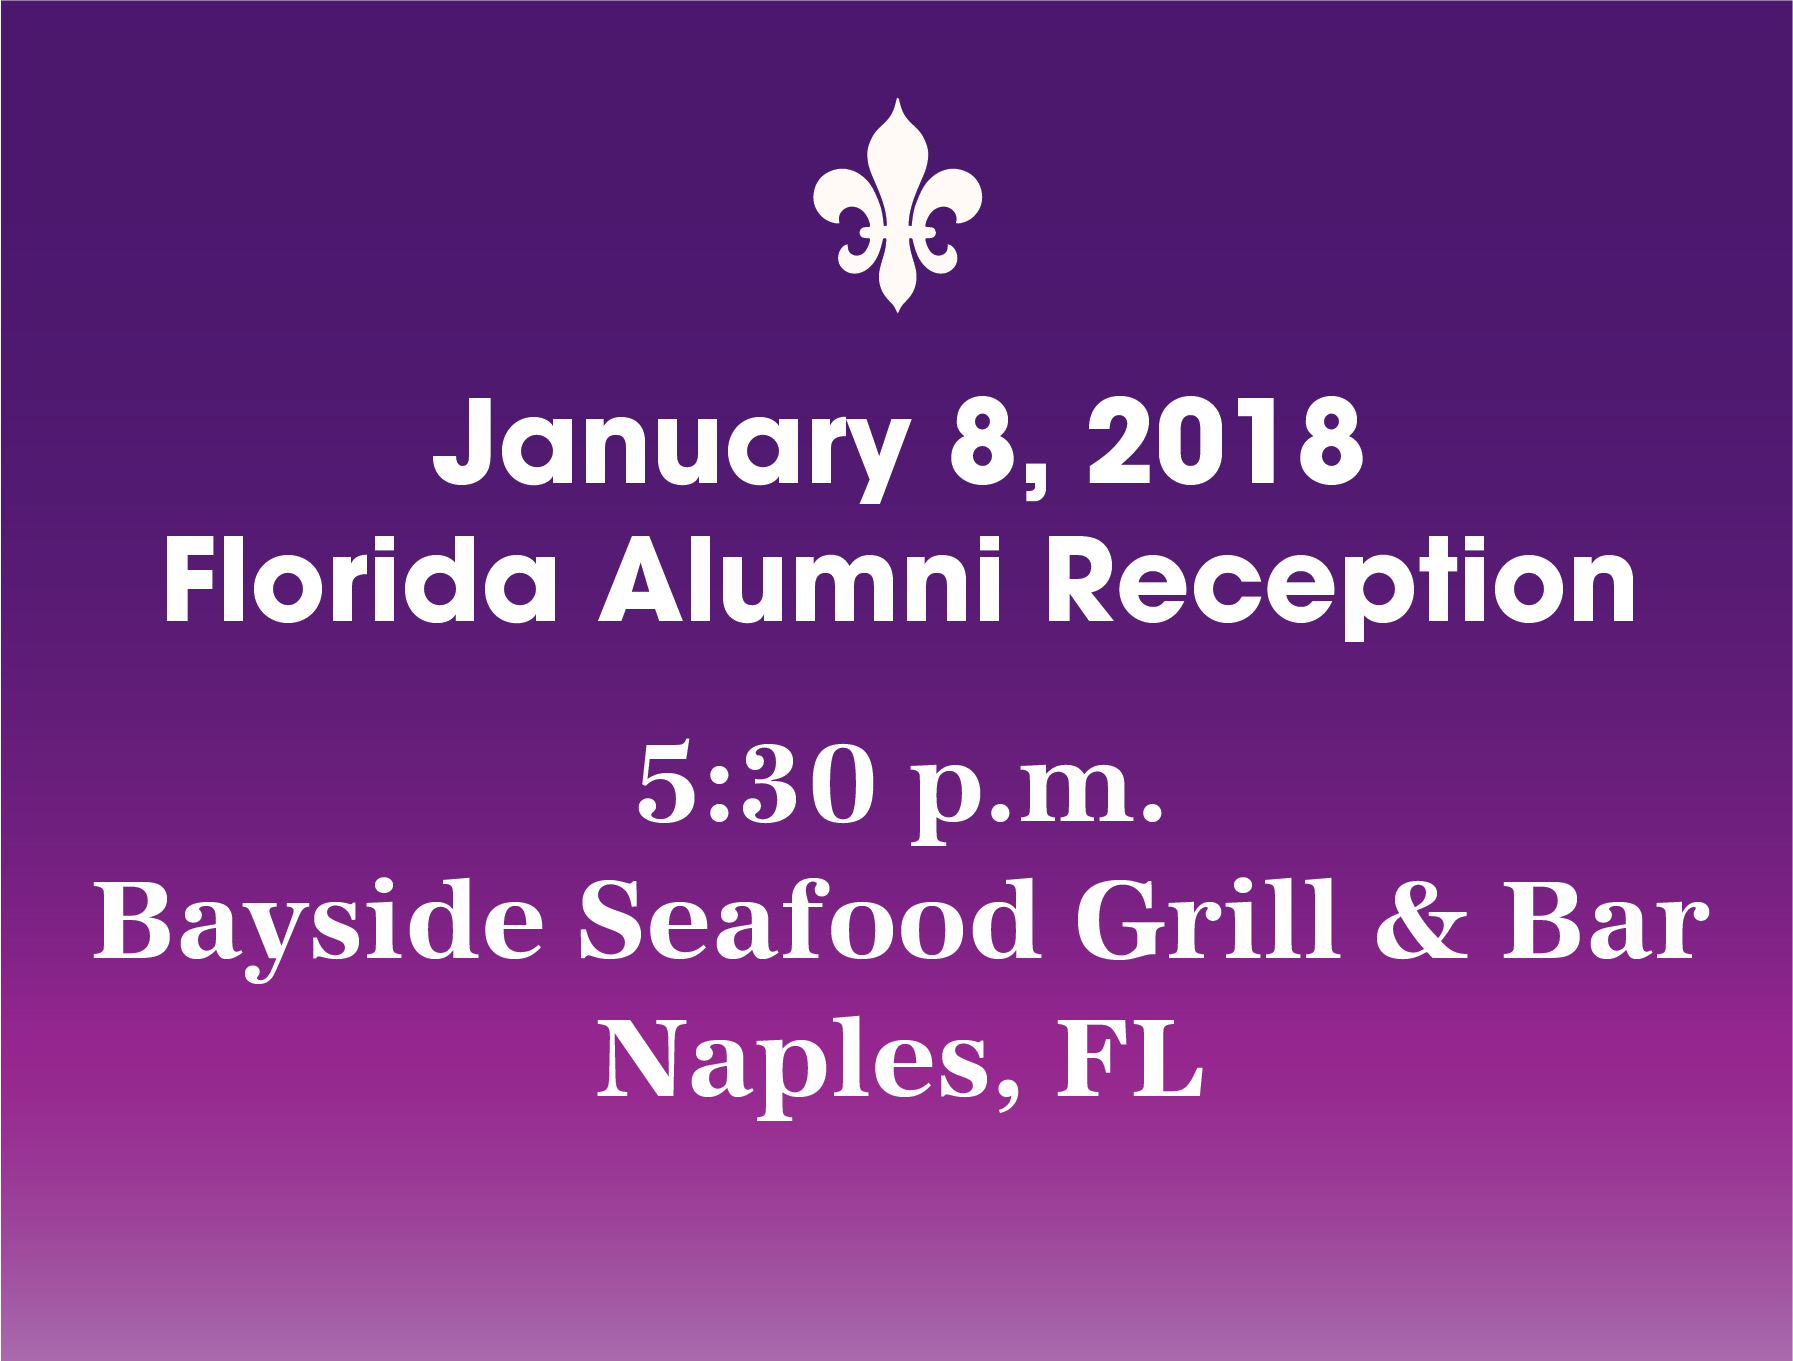 Florida Alumni Reception